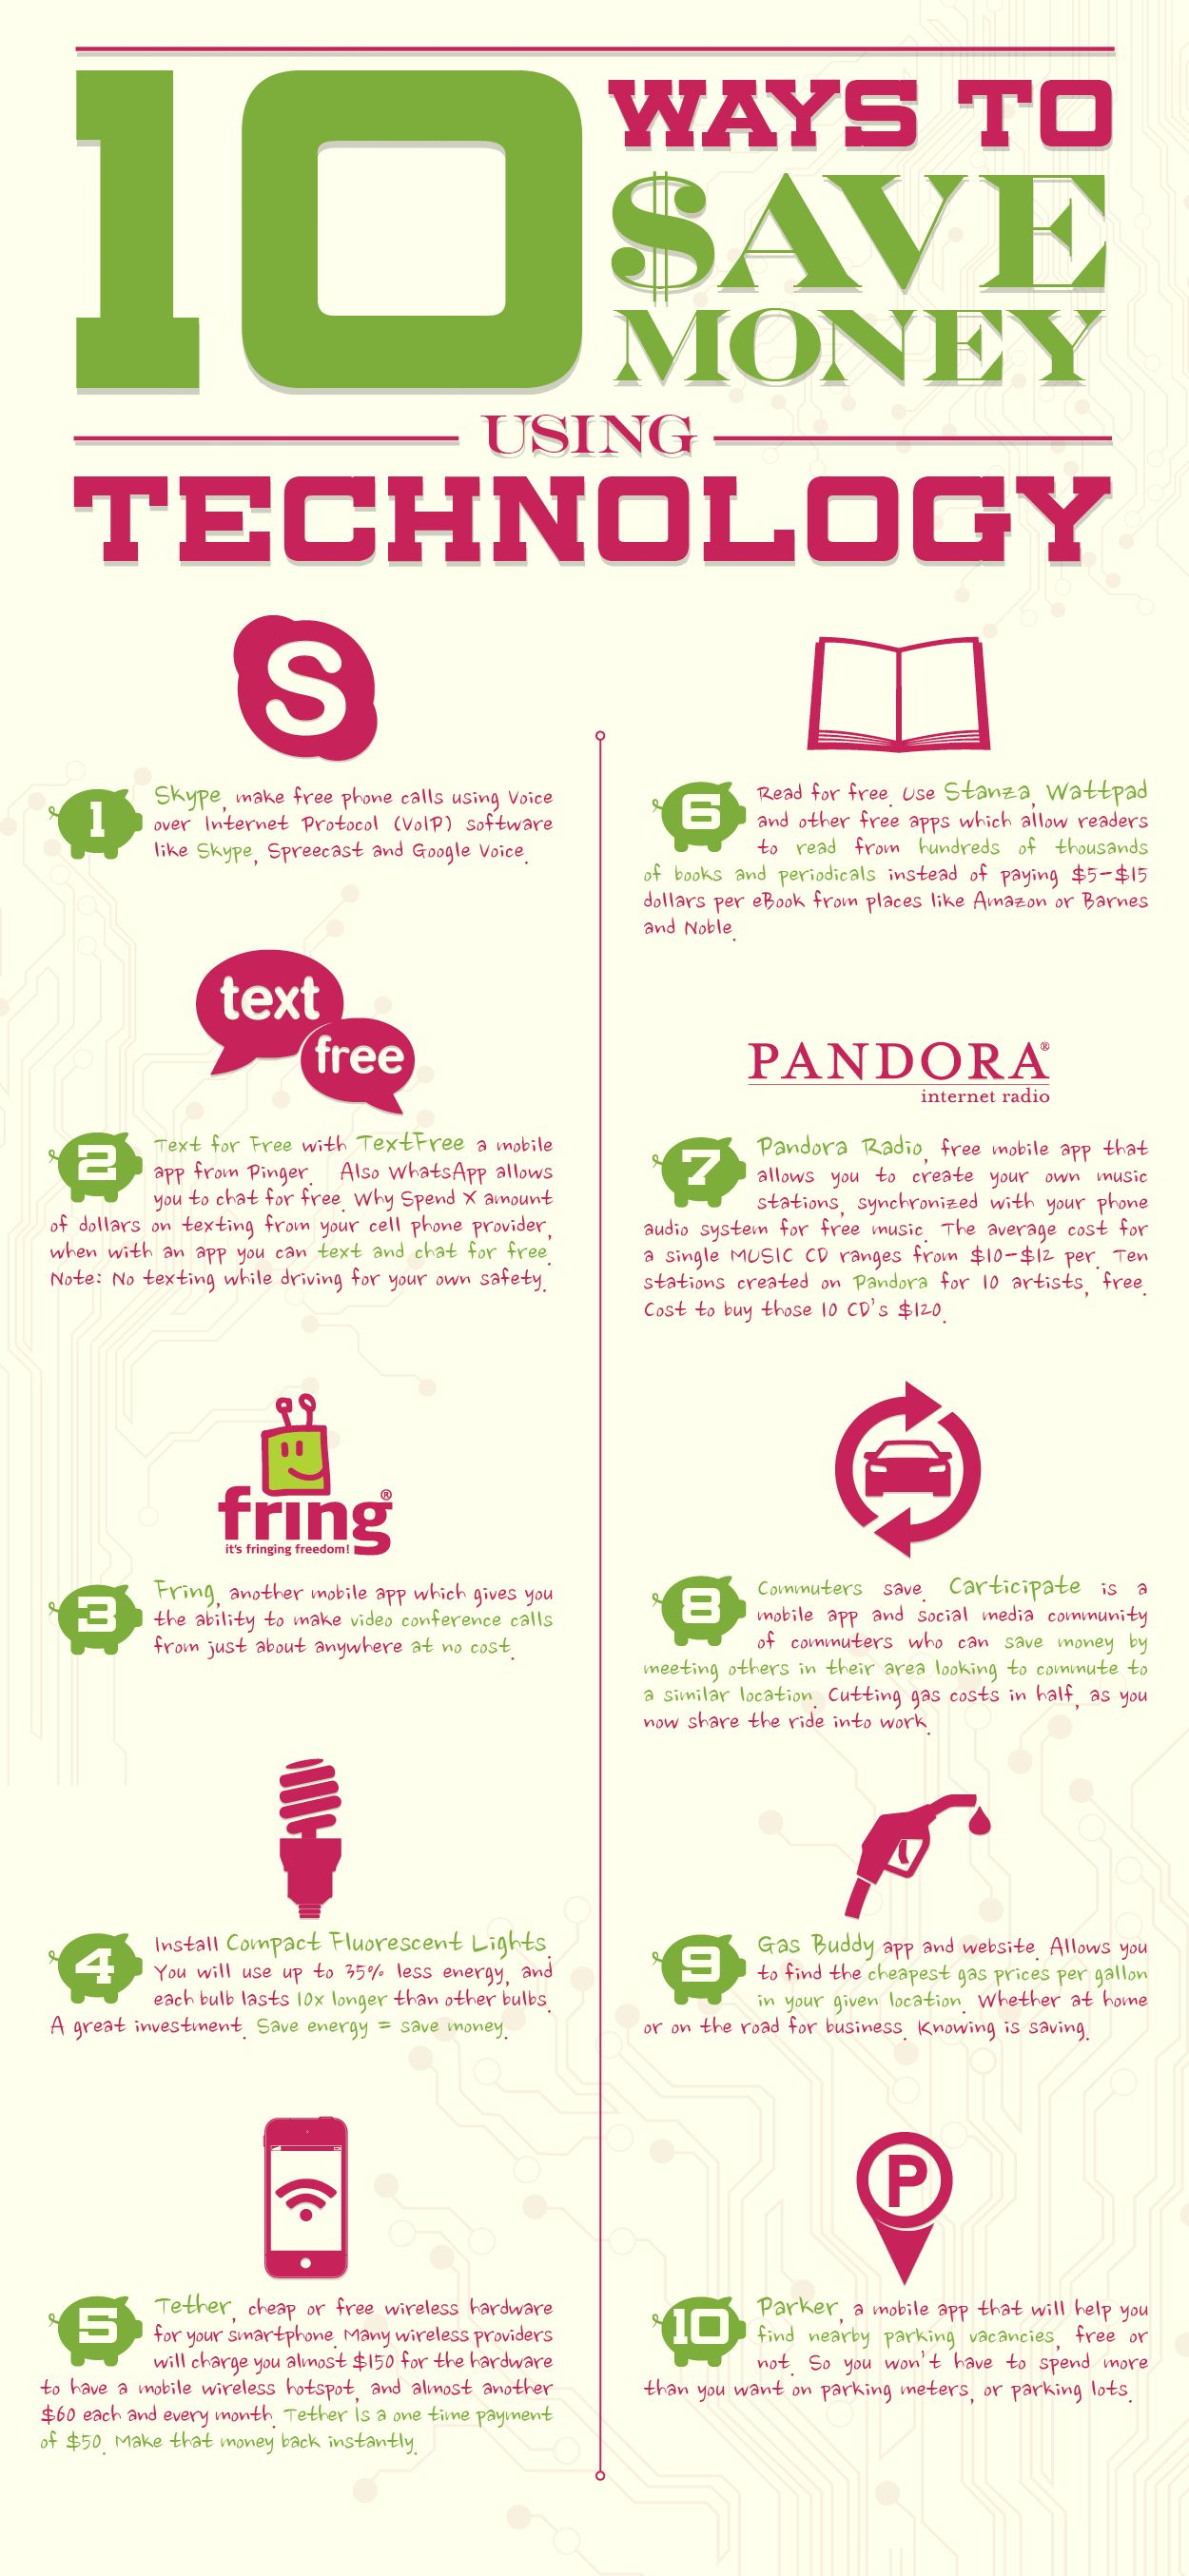 10 Ways To Save Money Using Technology Money Tips #SheMakesCents